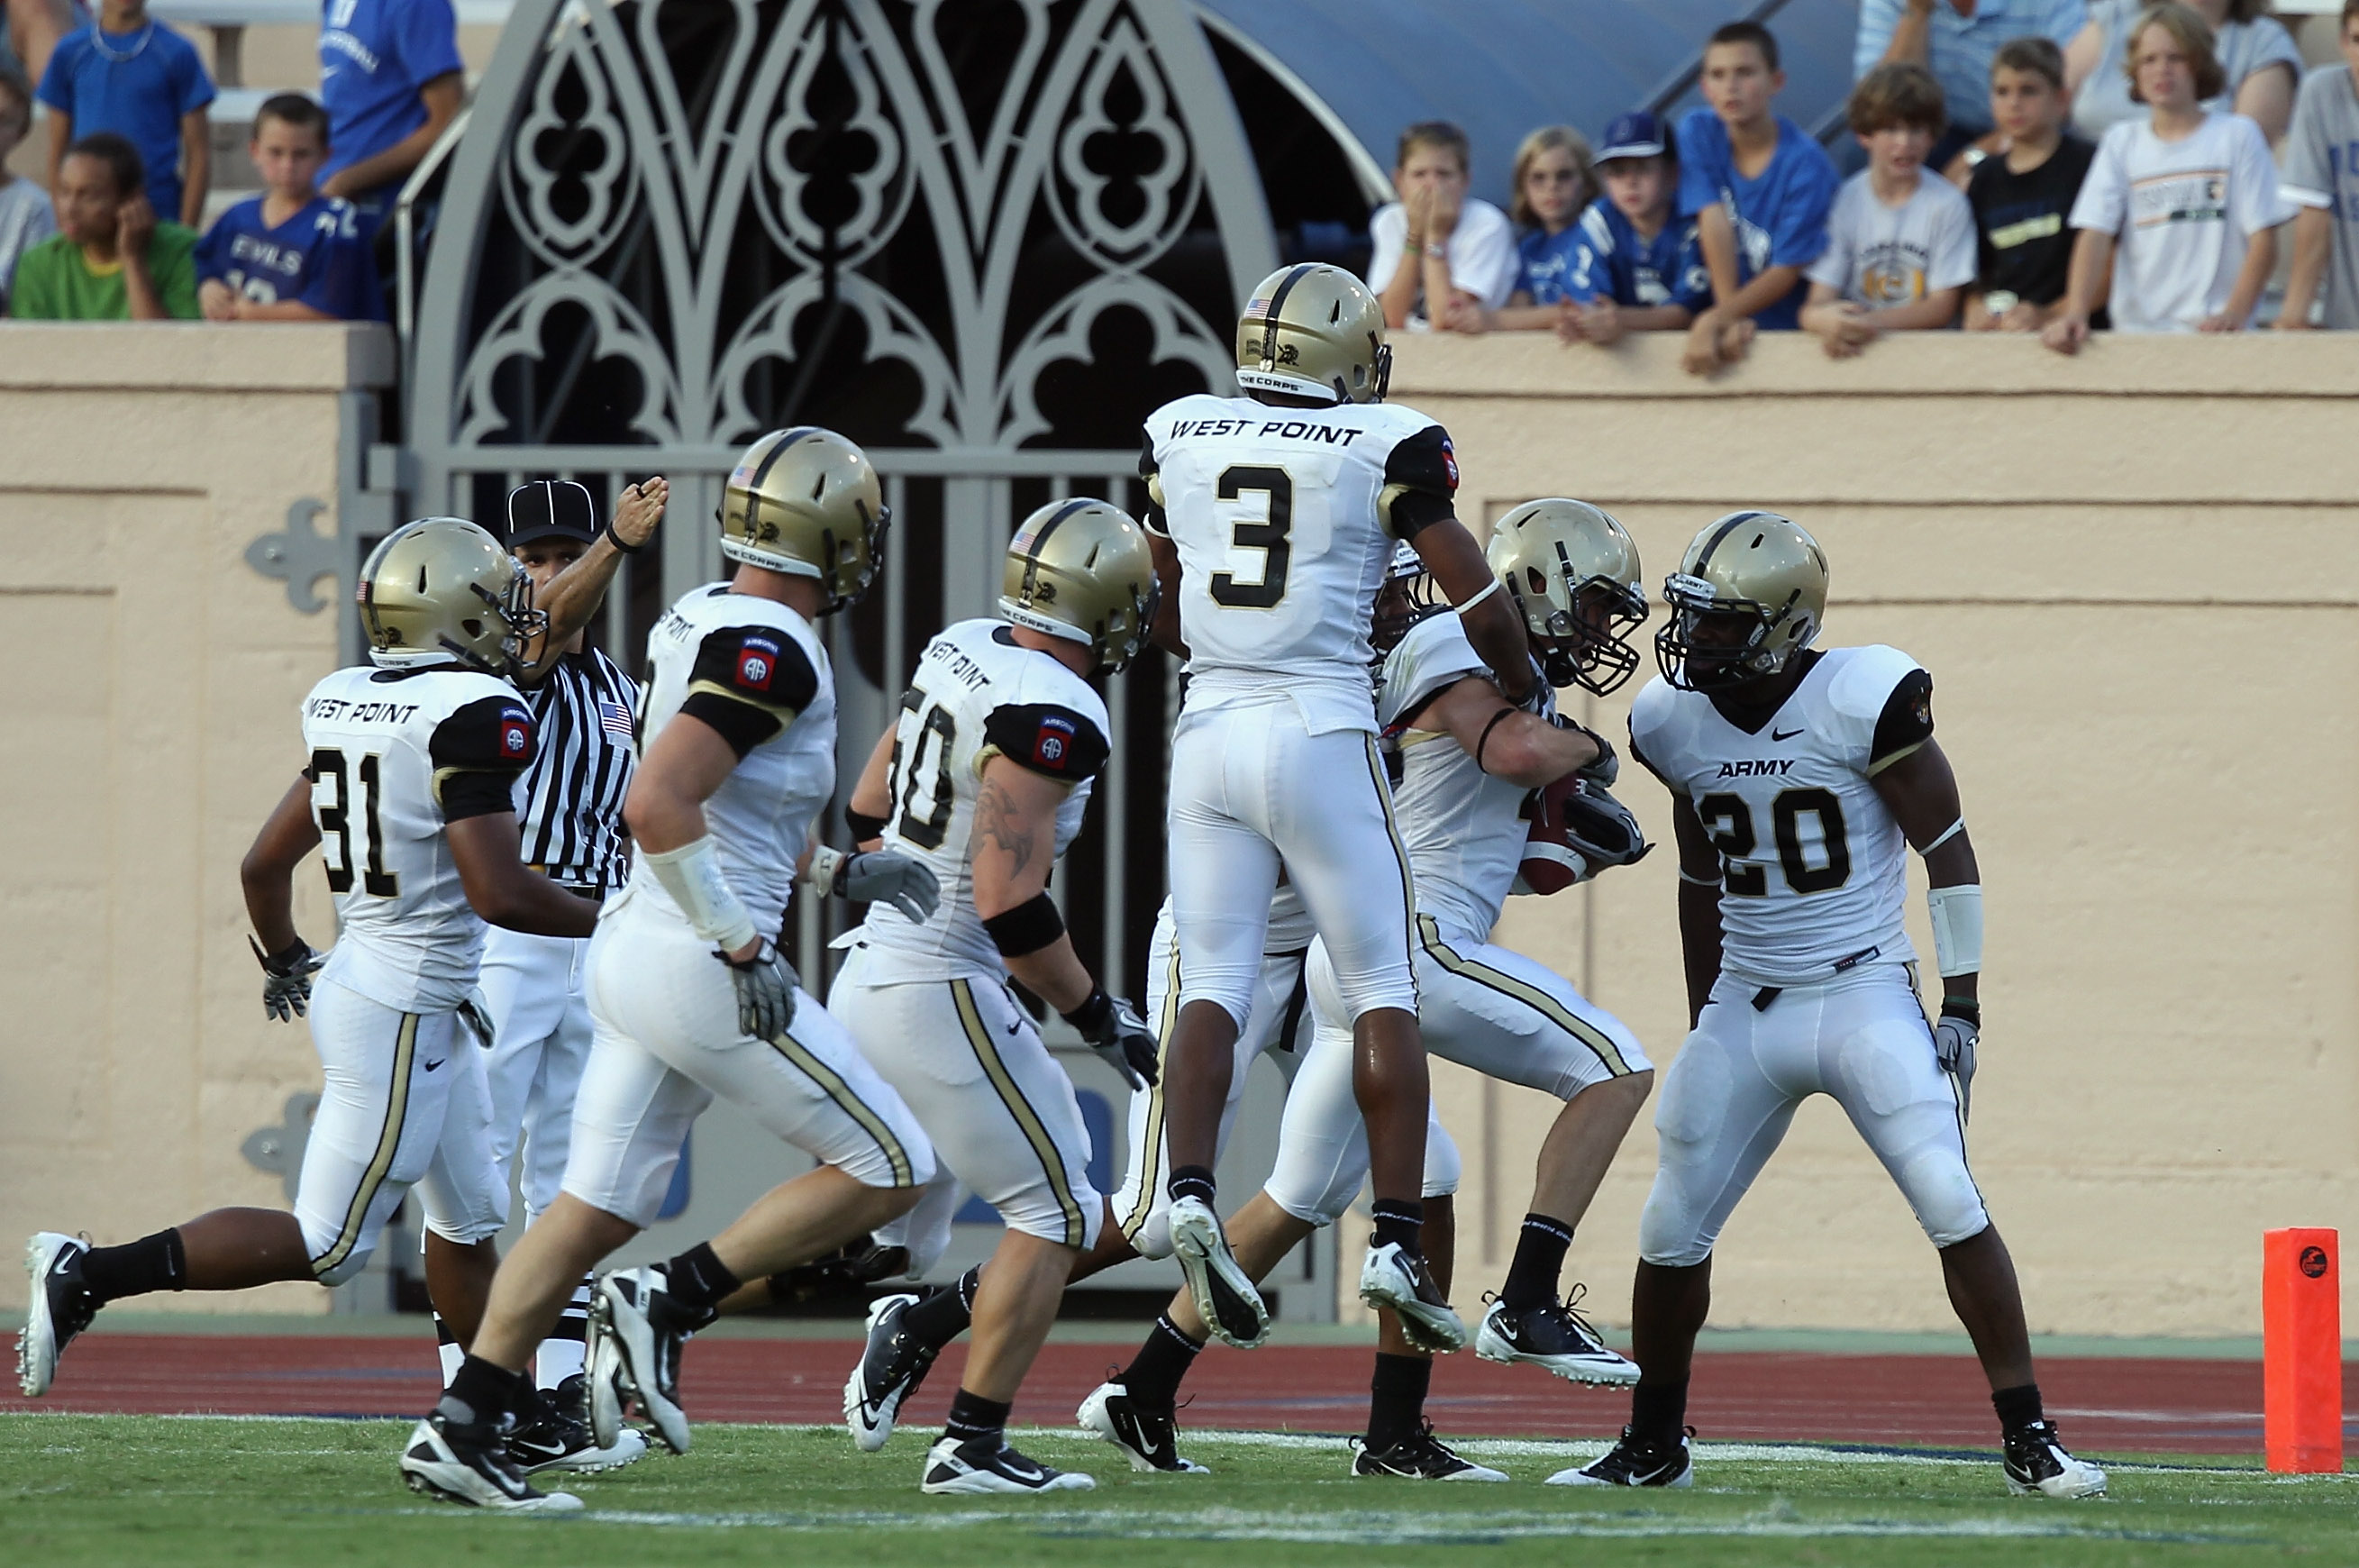 DURHAM, NC - SEPTEMBER 25:  Richard King #2 of the Army Black Knights celebrates with teammates after an interception that sealed the game in a 35-21 victory over the Duke Blue Devils at Wallace Wade Stadium on September 25, 2010 in Durham, North Carolina